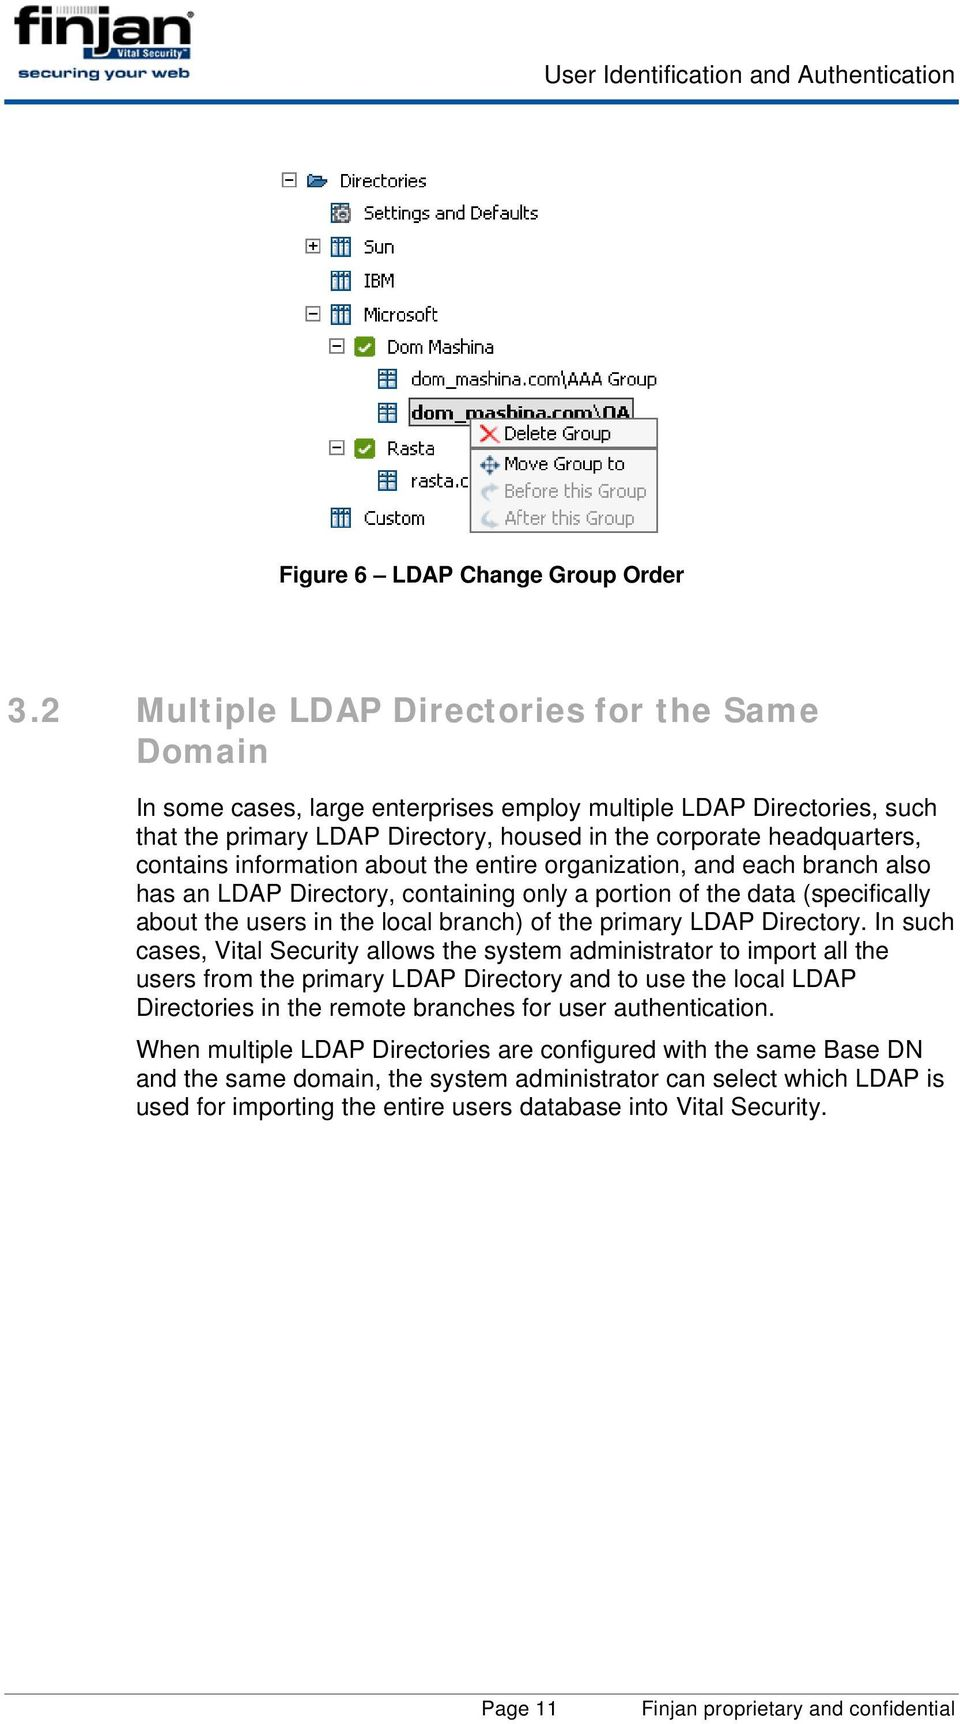 information about the entire organization, and each branch also has an LDAP Directory, containing only a portion of the data (specifically about the users in the local branch) of the primary LDAP